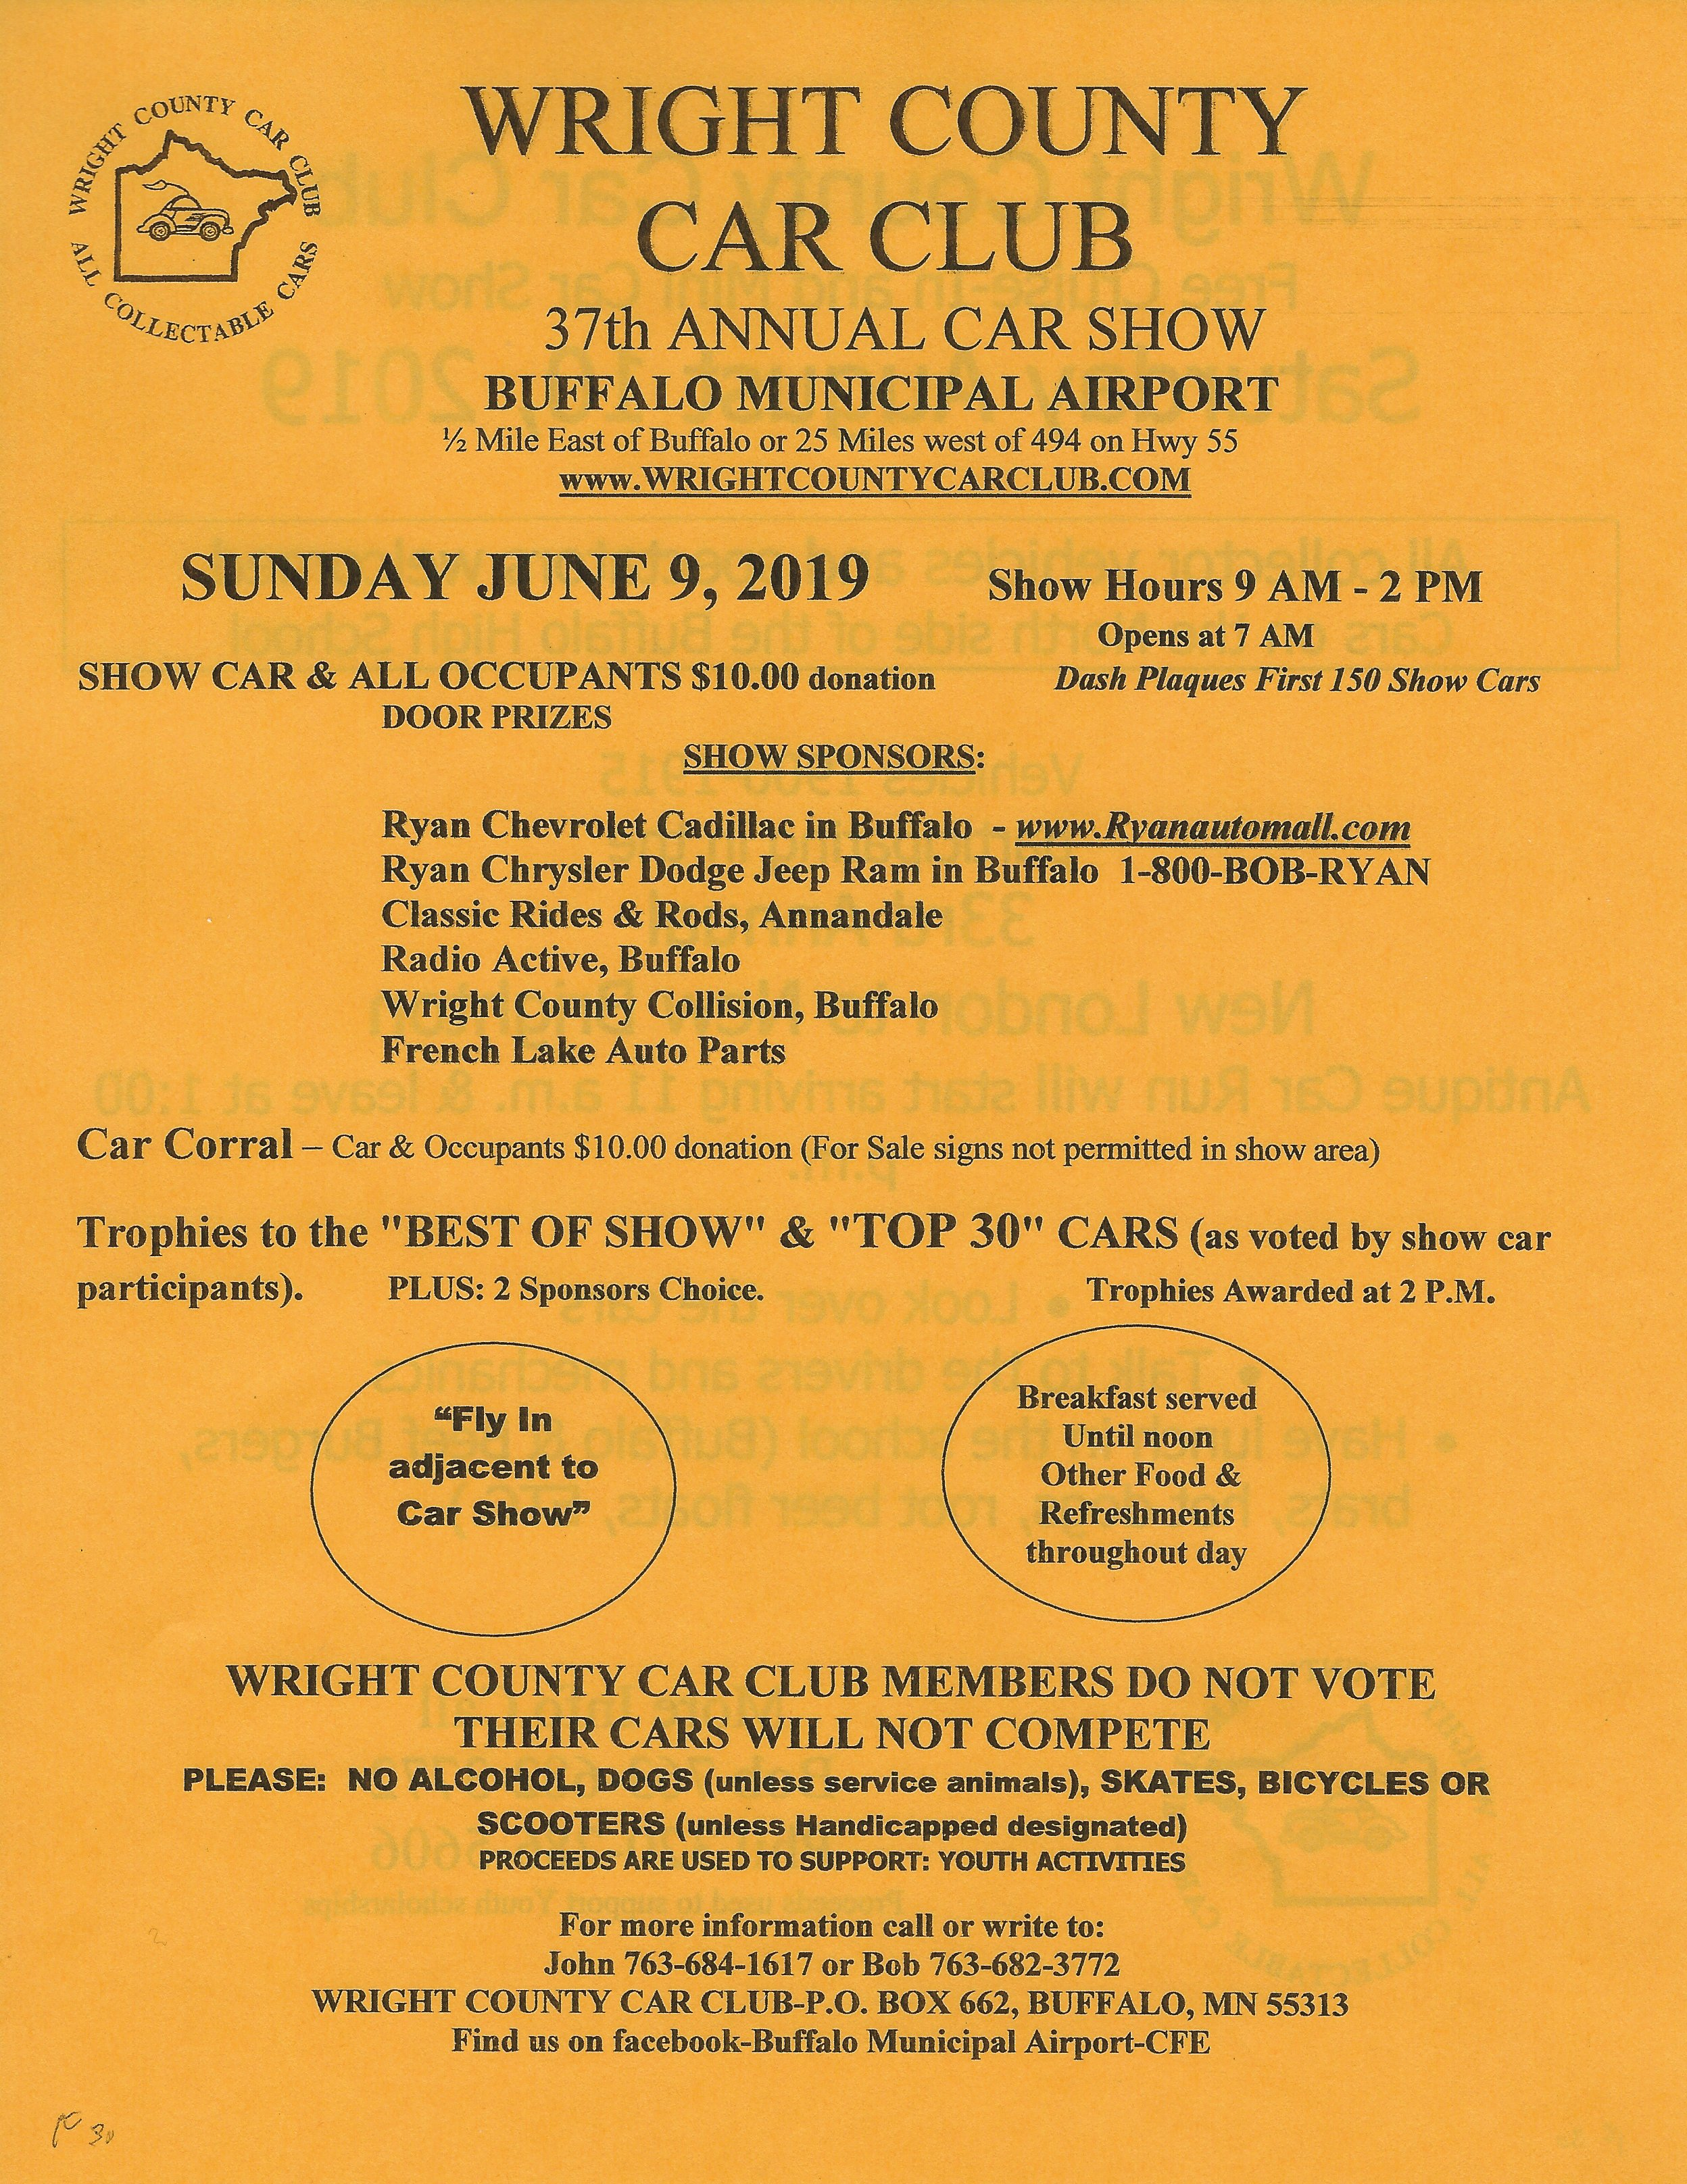 WRIGHT COUNTY CAR CLUB 37th Annual Car Show - Events with Cars